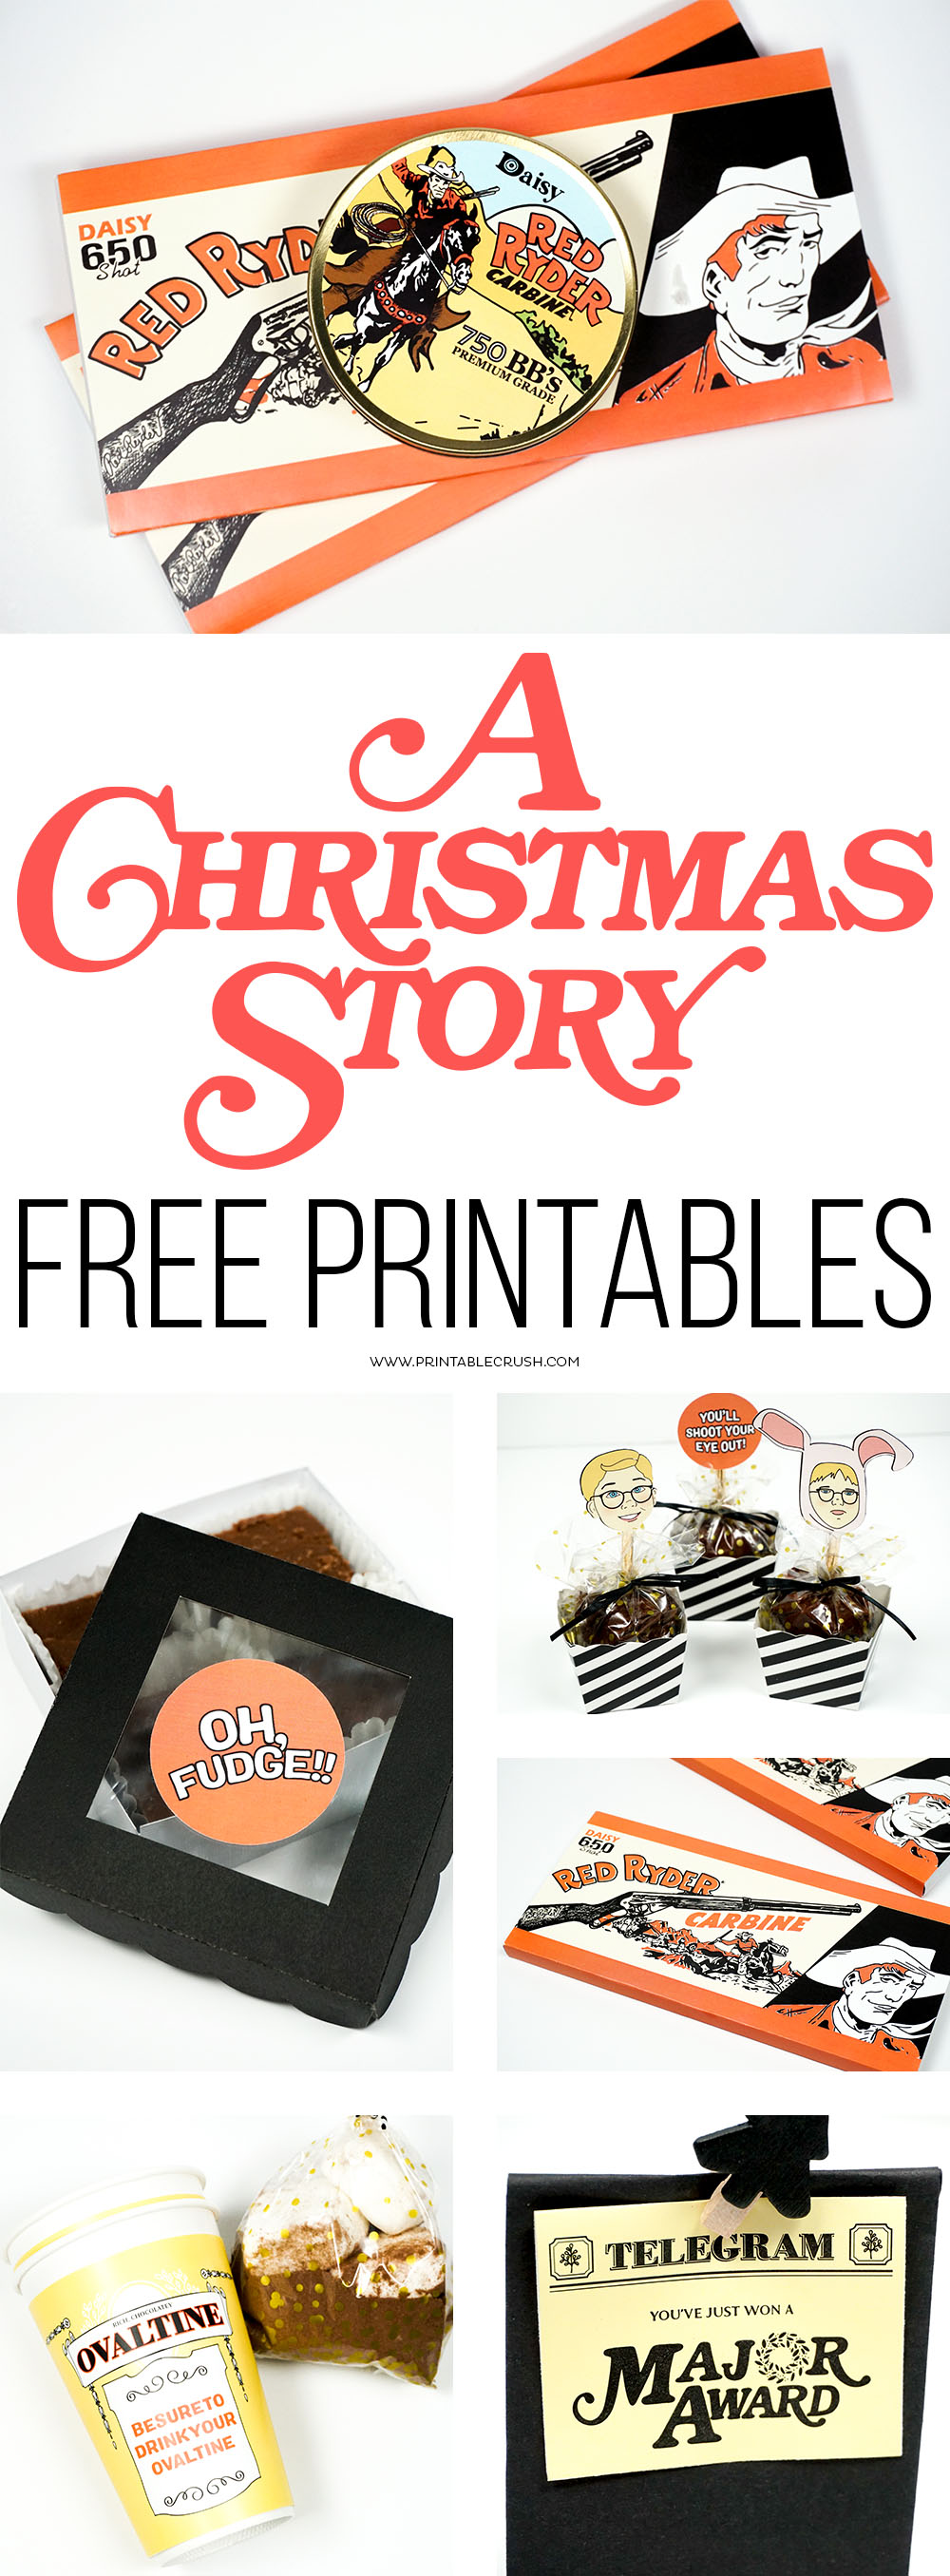 Download A Christmas Story FREE Printables to use at parties or for creative Christmas gifts. Includes 8 designs, from candy wrappers, to gift labels! #aChristmasStory #Freeprintables #Christmasgiftideas via @printablecrush